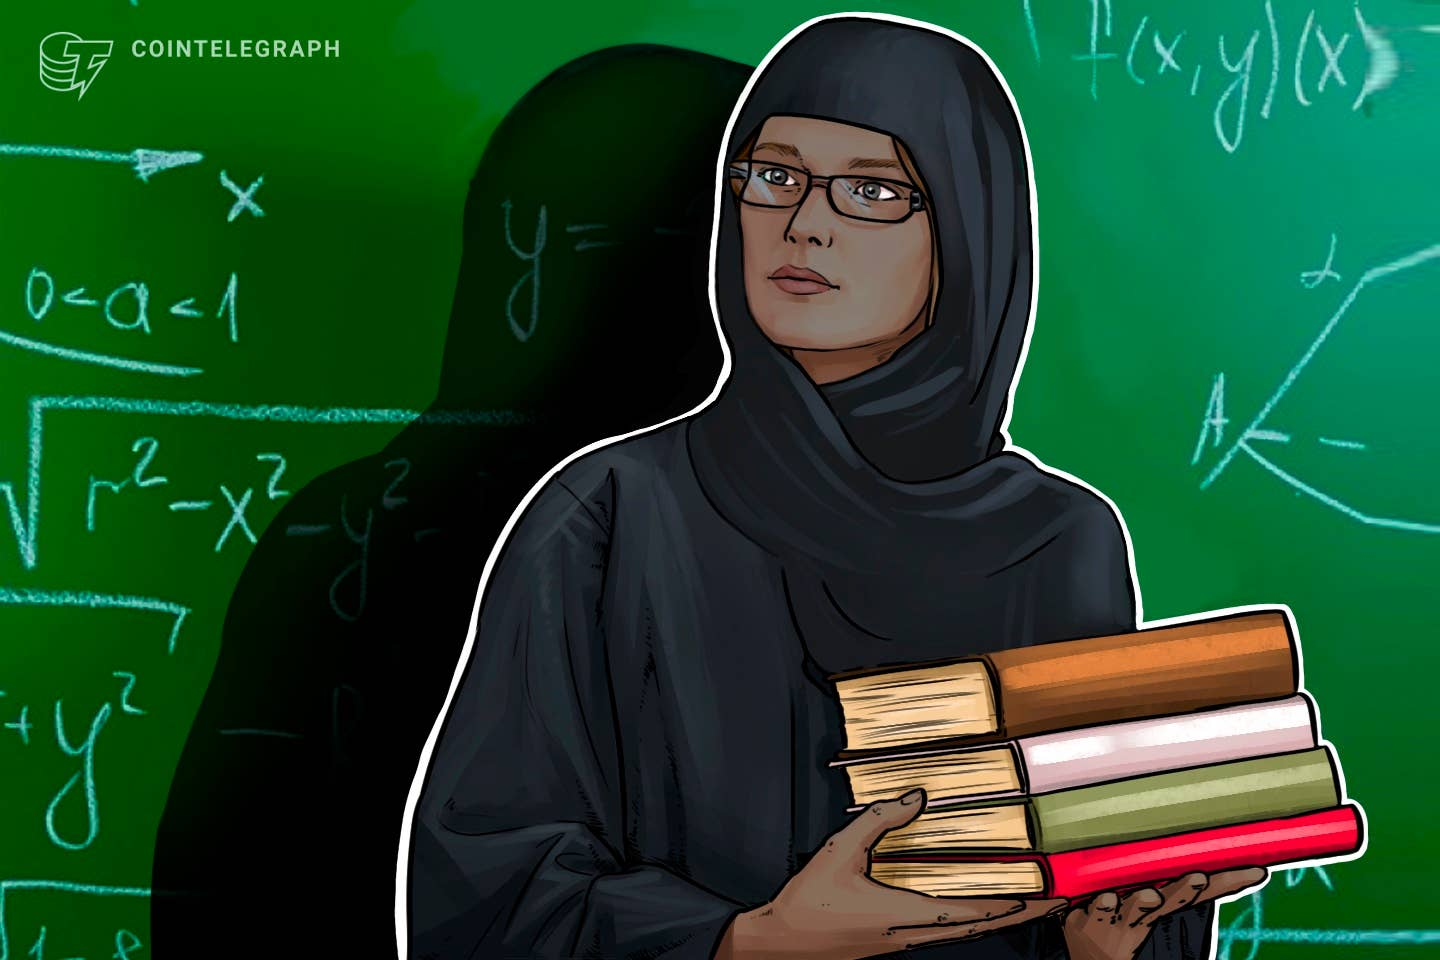 nft project partners with afghanistan organization to help women get access to education